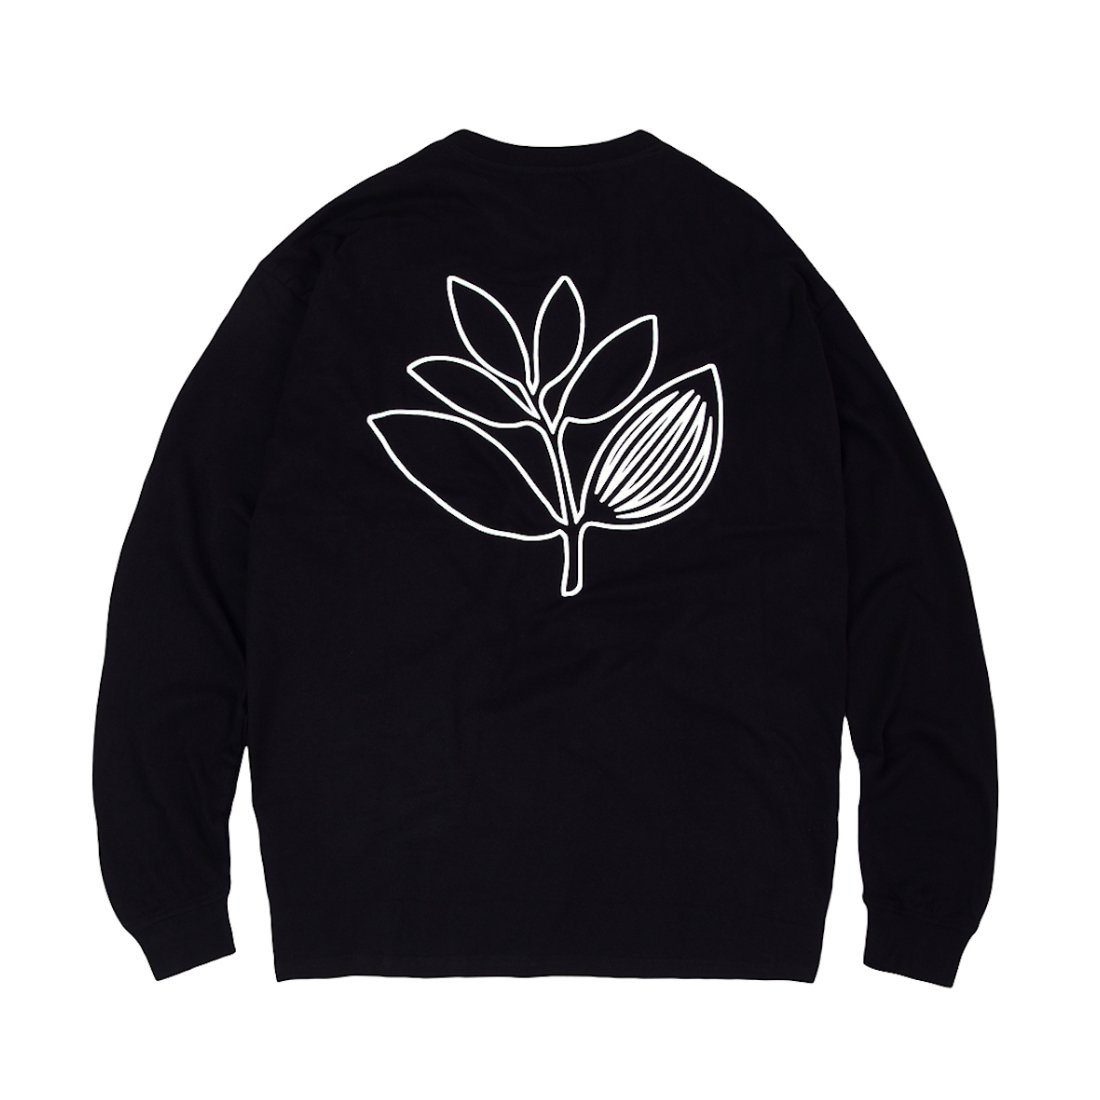 【Magenta Skateboards】Plant Outline L/S Tee - Black/White